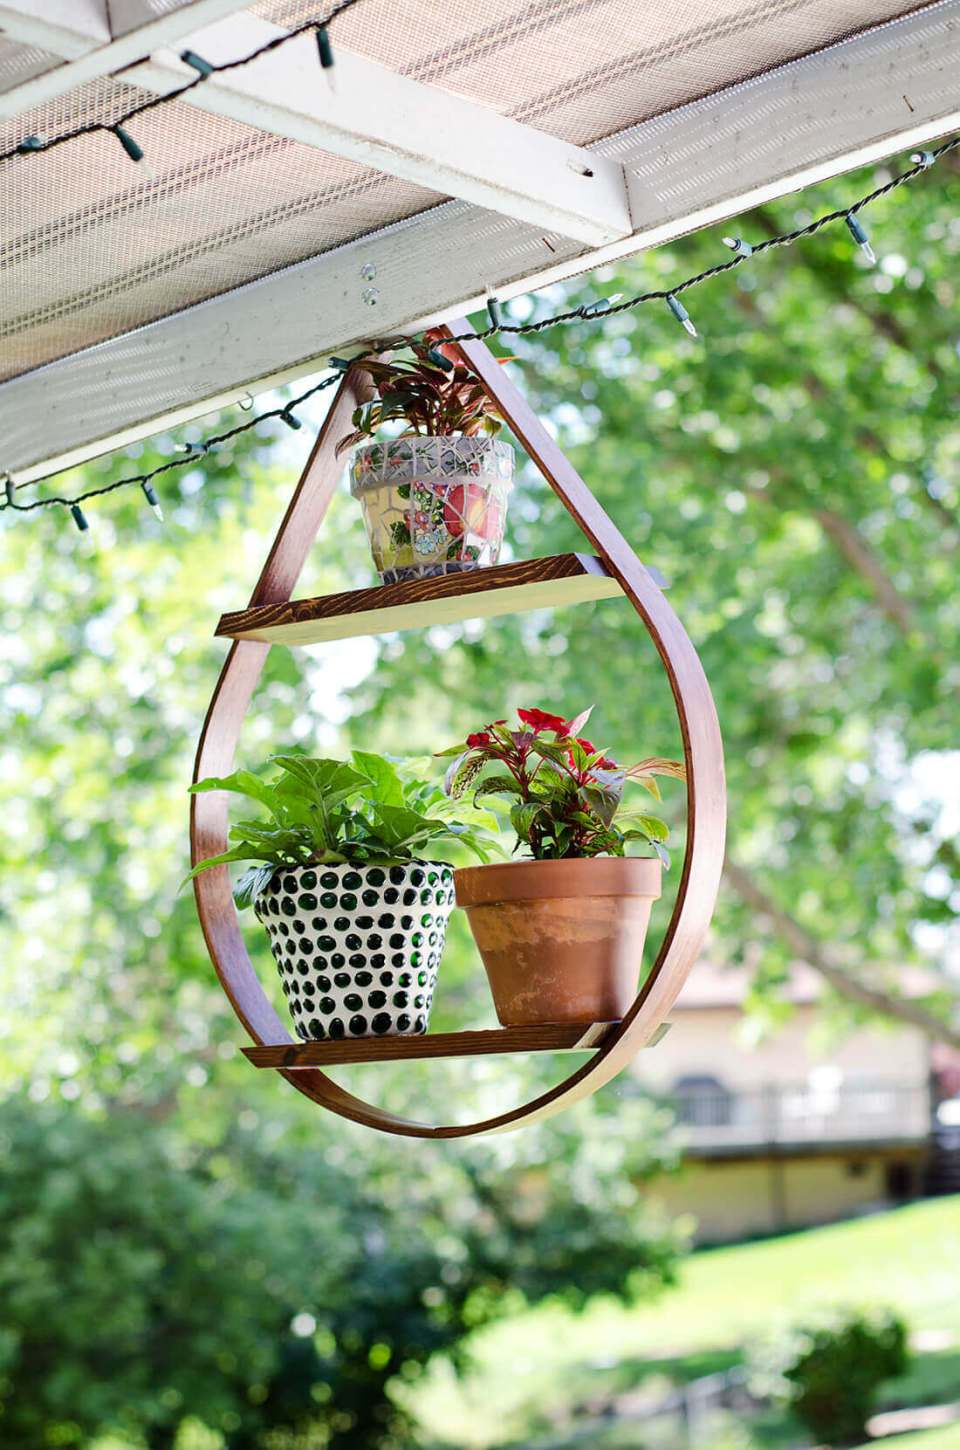 Teardrop Shaped Potted Plant Display Shelf | DIY Outdoor Hanging Planter Ideas | Plant Pot Design Ideas